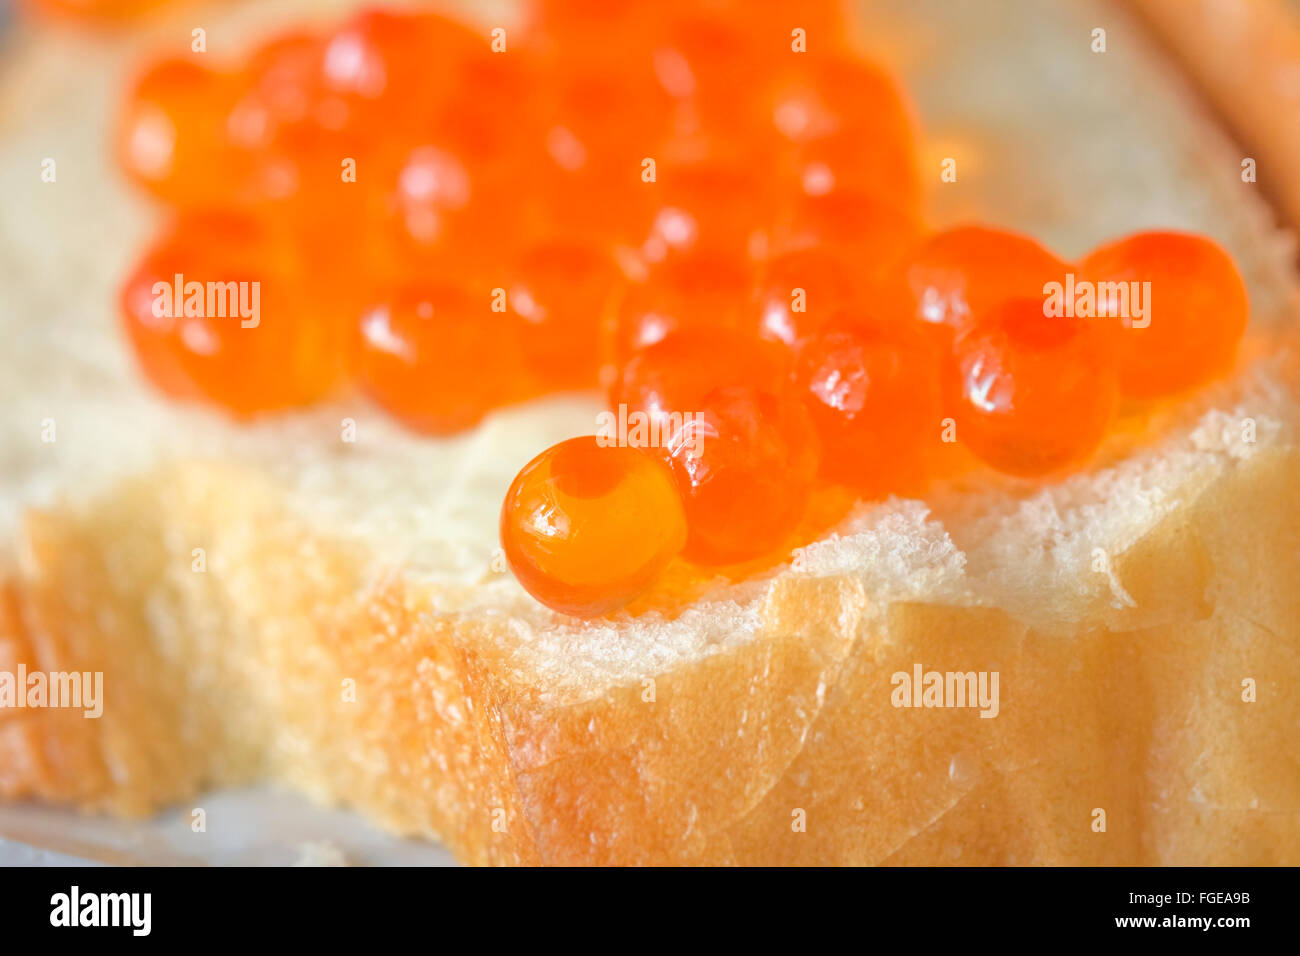 Sandwich of white bread with red caviar Stock Photo